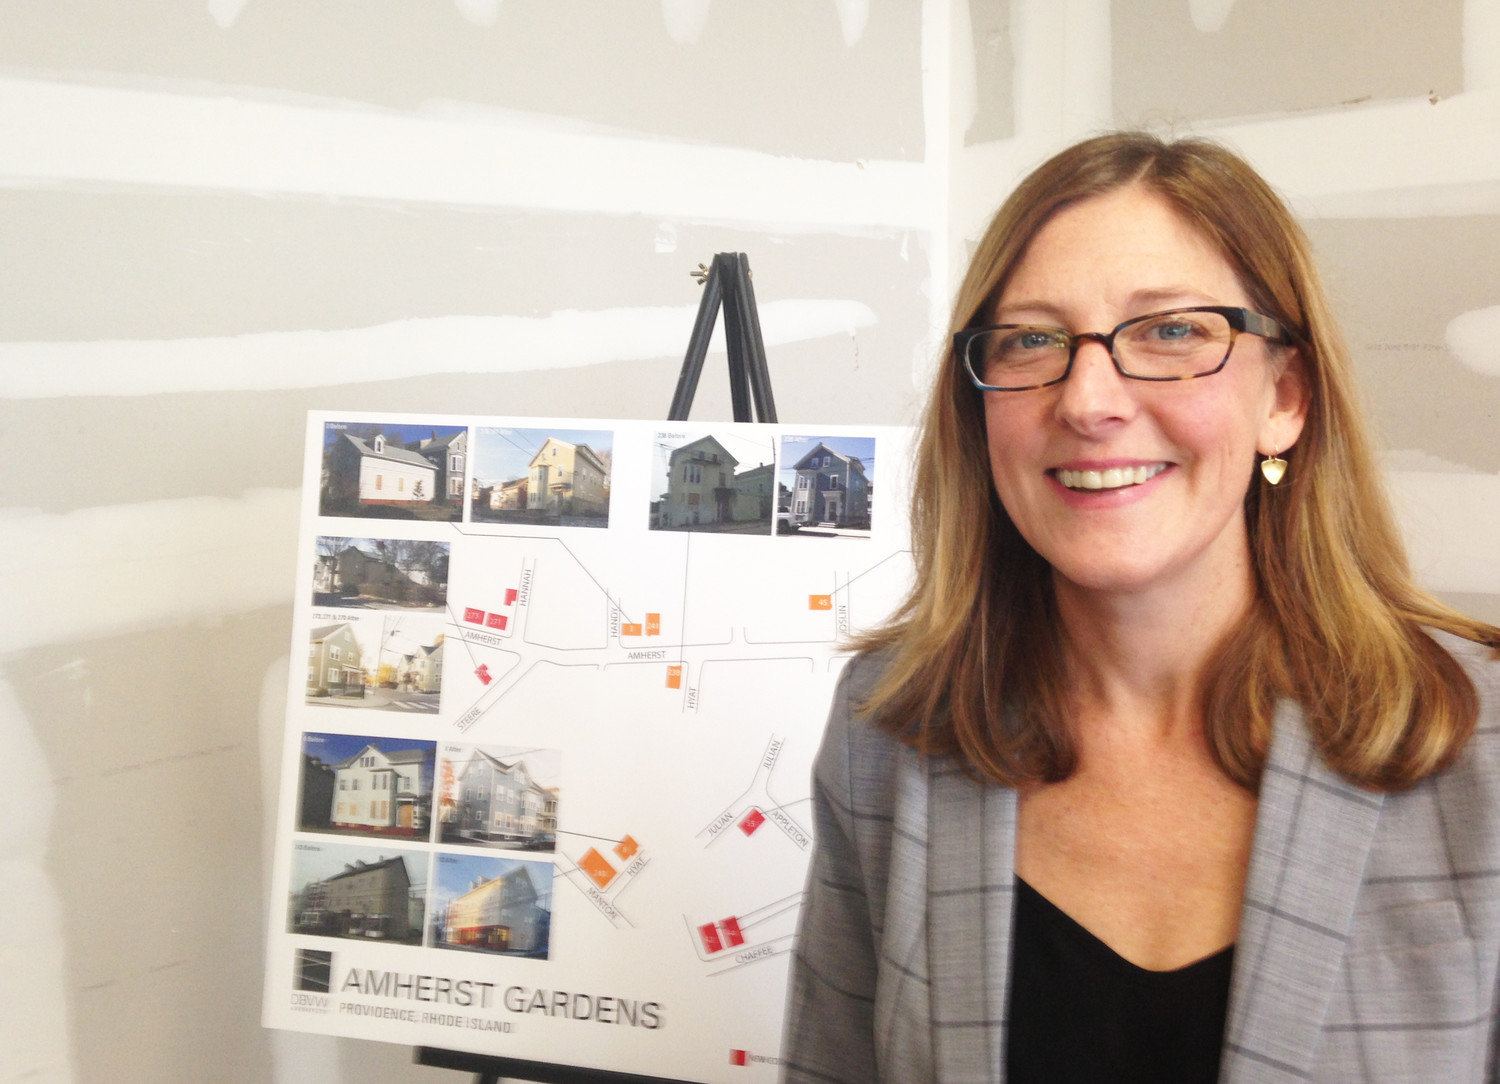 Jennifer Hawkins, the executive director of ONE Neighborhood Builders, at a recent event celebrating the completion of the Amherst Gardens project.